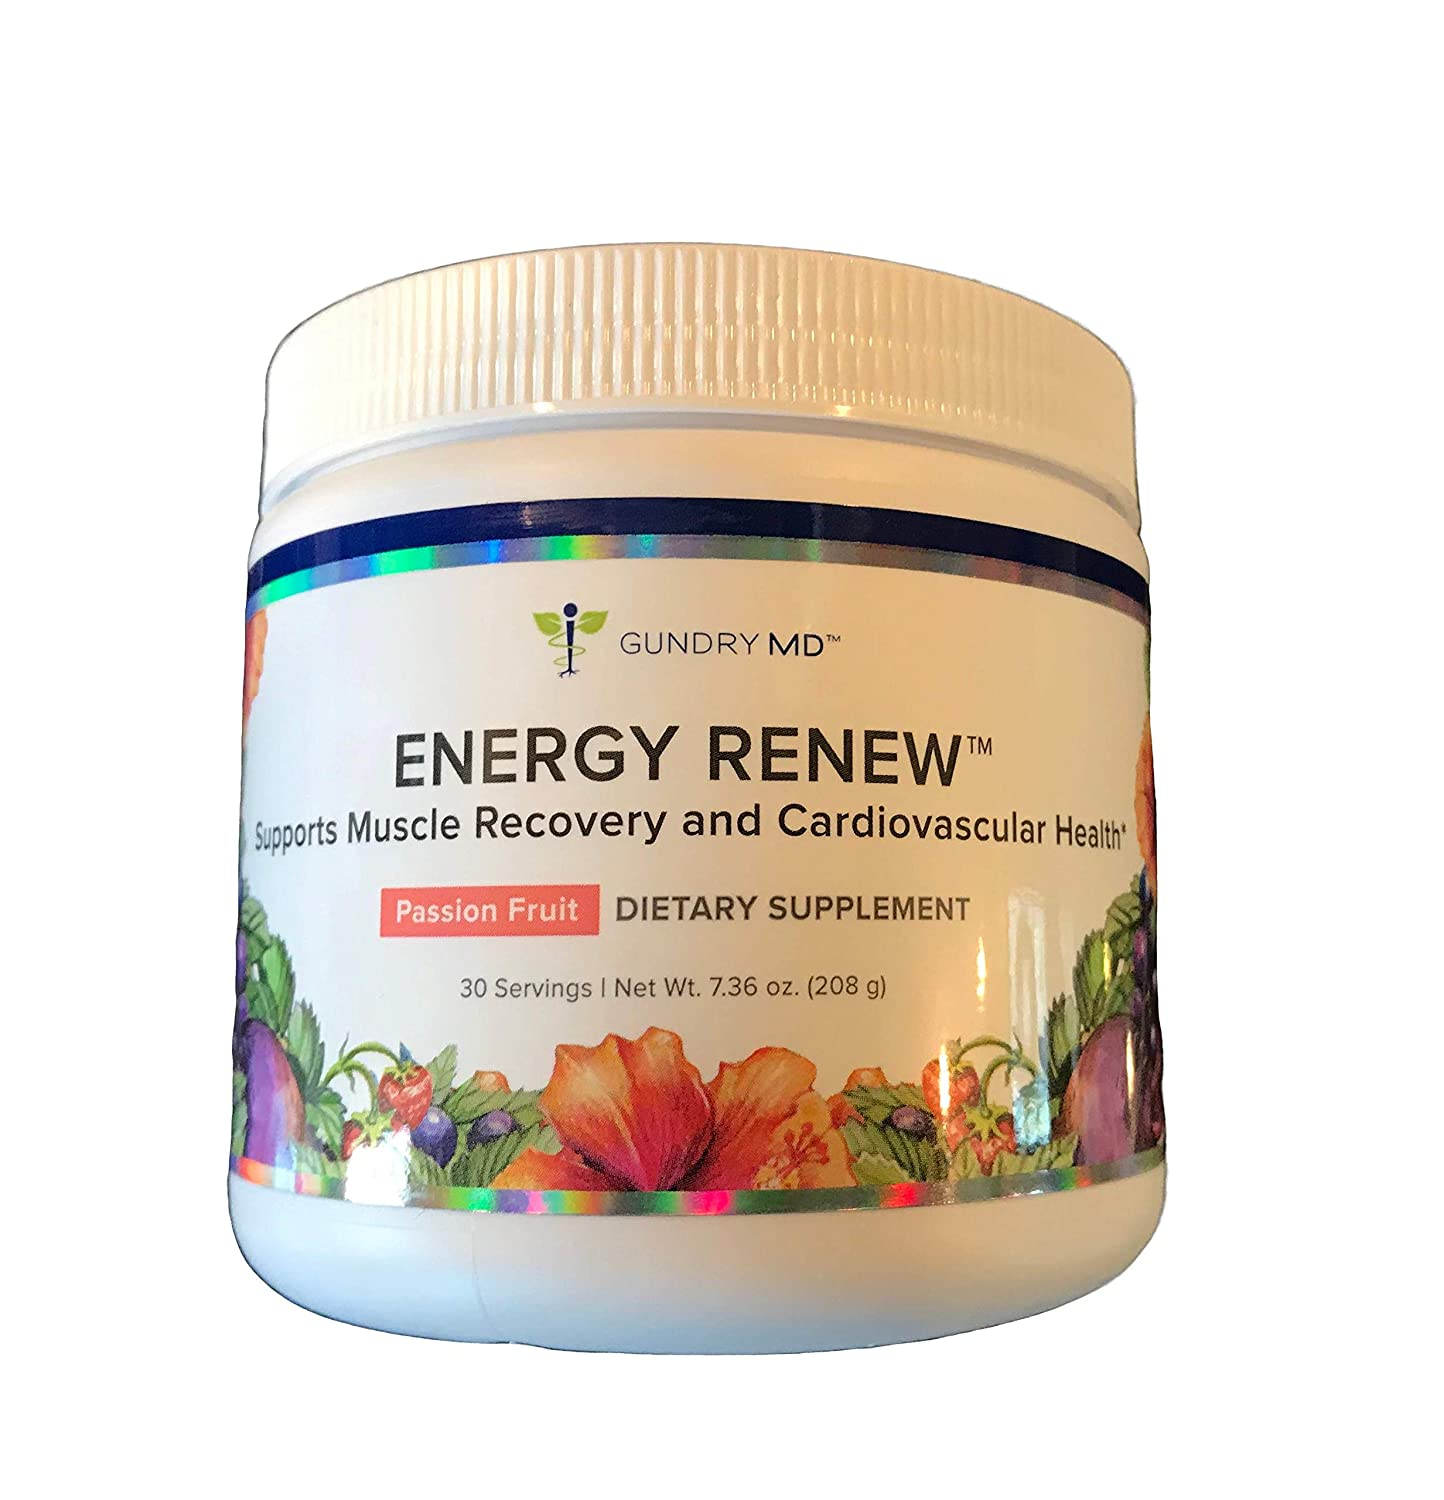 Gundry MD Energy Renew Passion Fruit 30 Servings